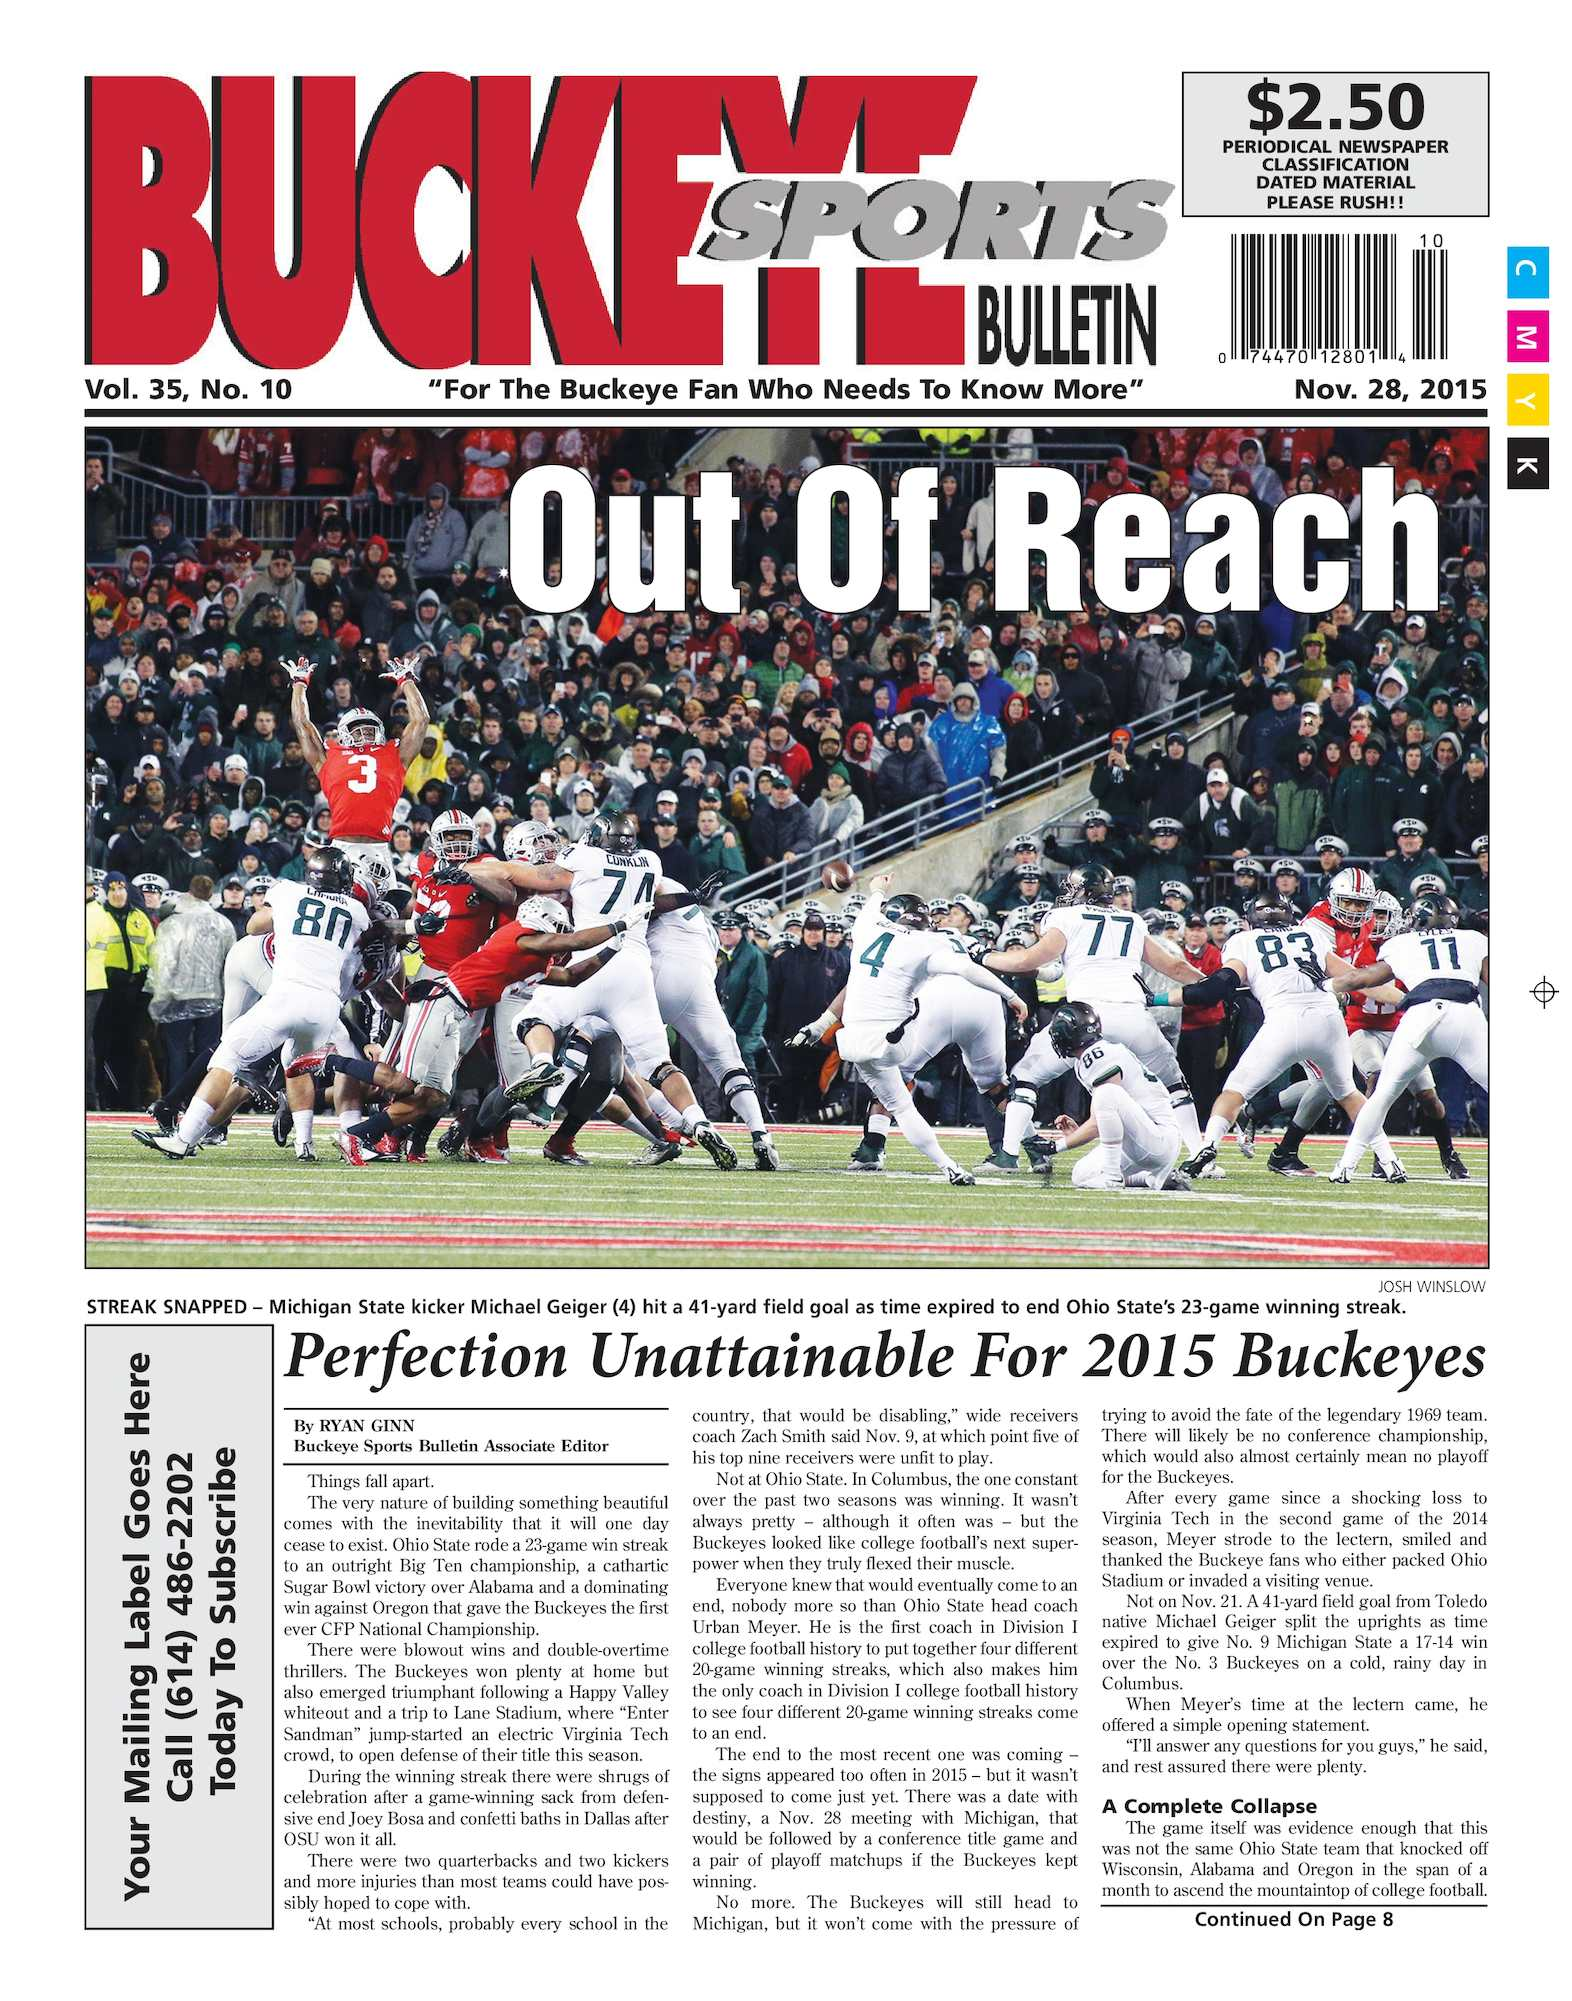 e449d754f Calaméo - Buckeye Sports Bulletin November 28